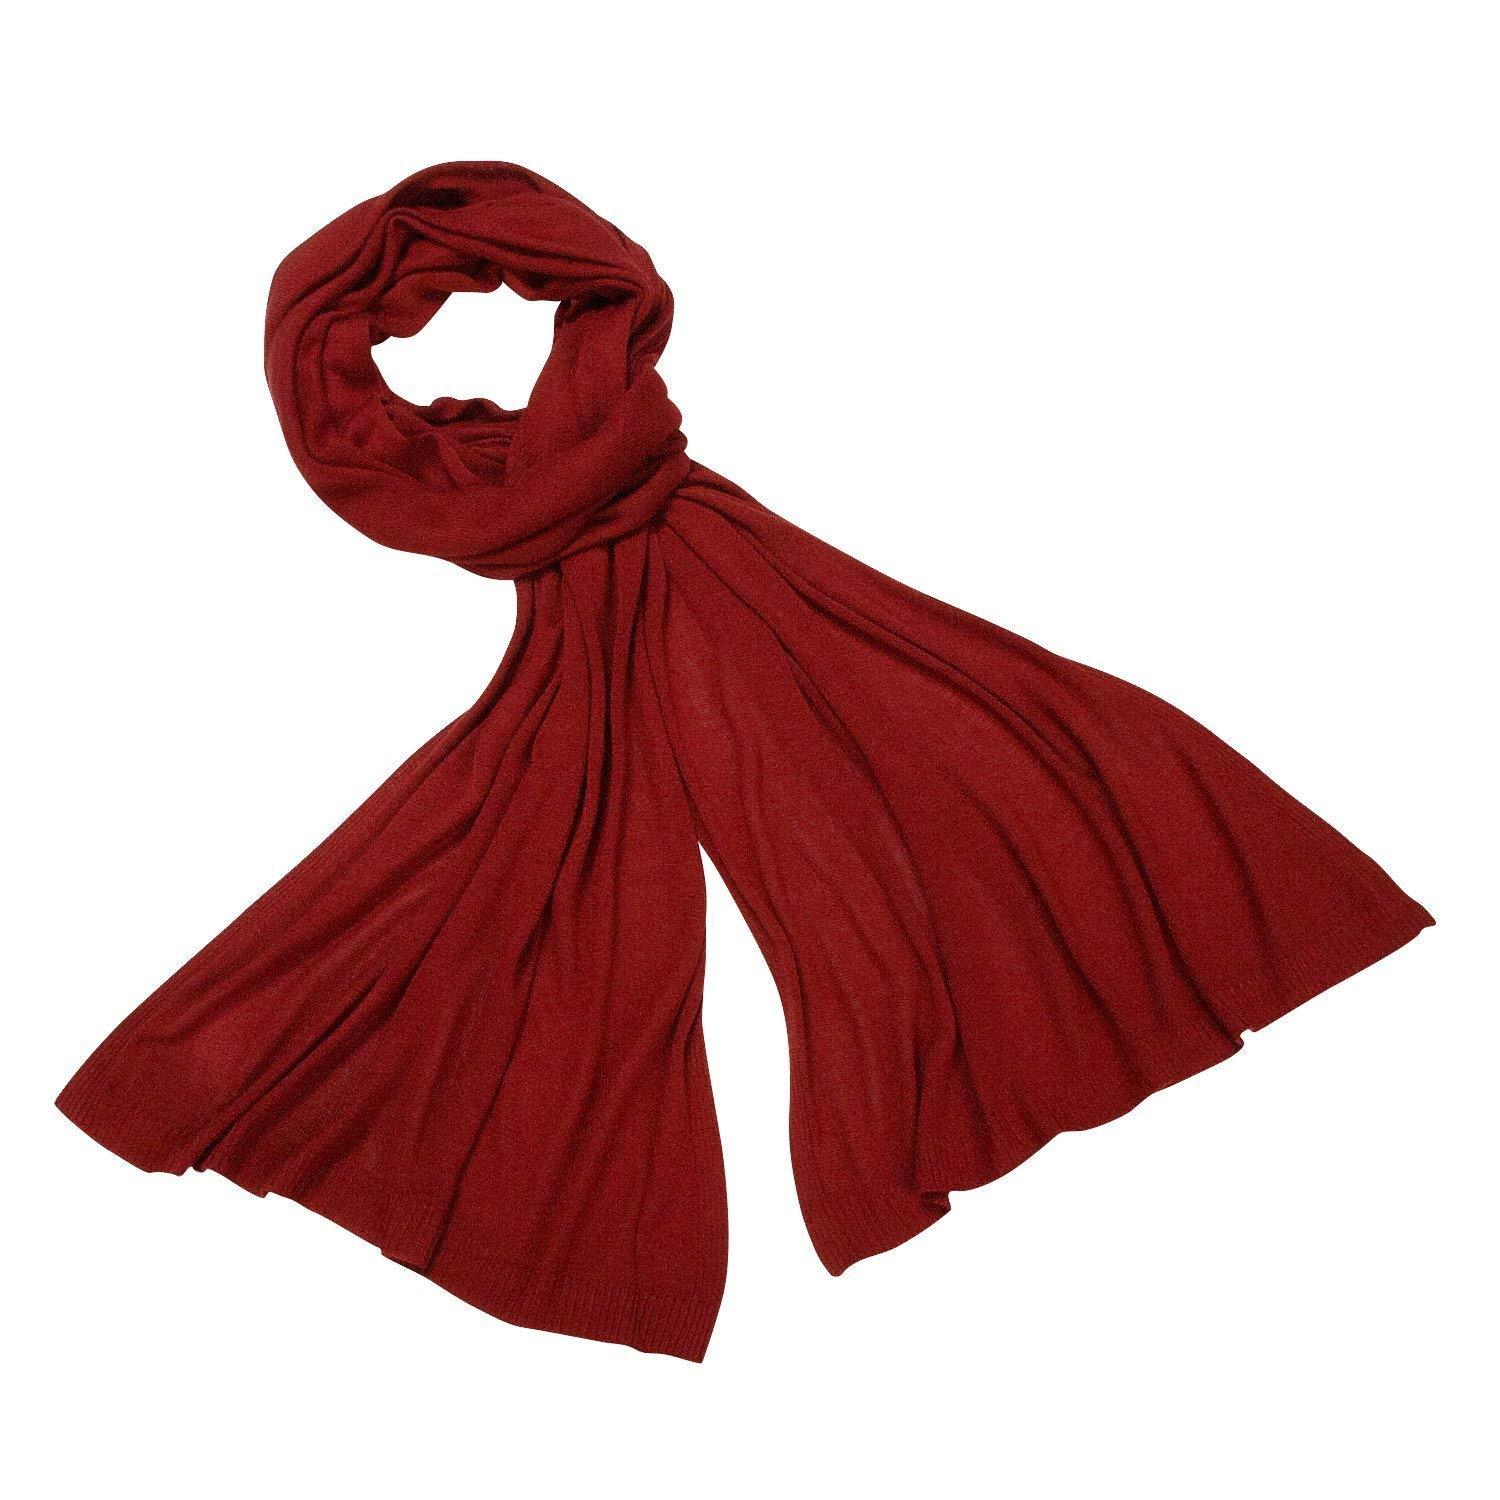 87f2ec93614 Get Quotations · Eco-Friendly Lightweight Reversible Scarf  Nepal Red Bamboo  Scarf